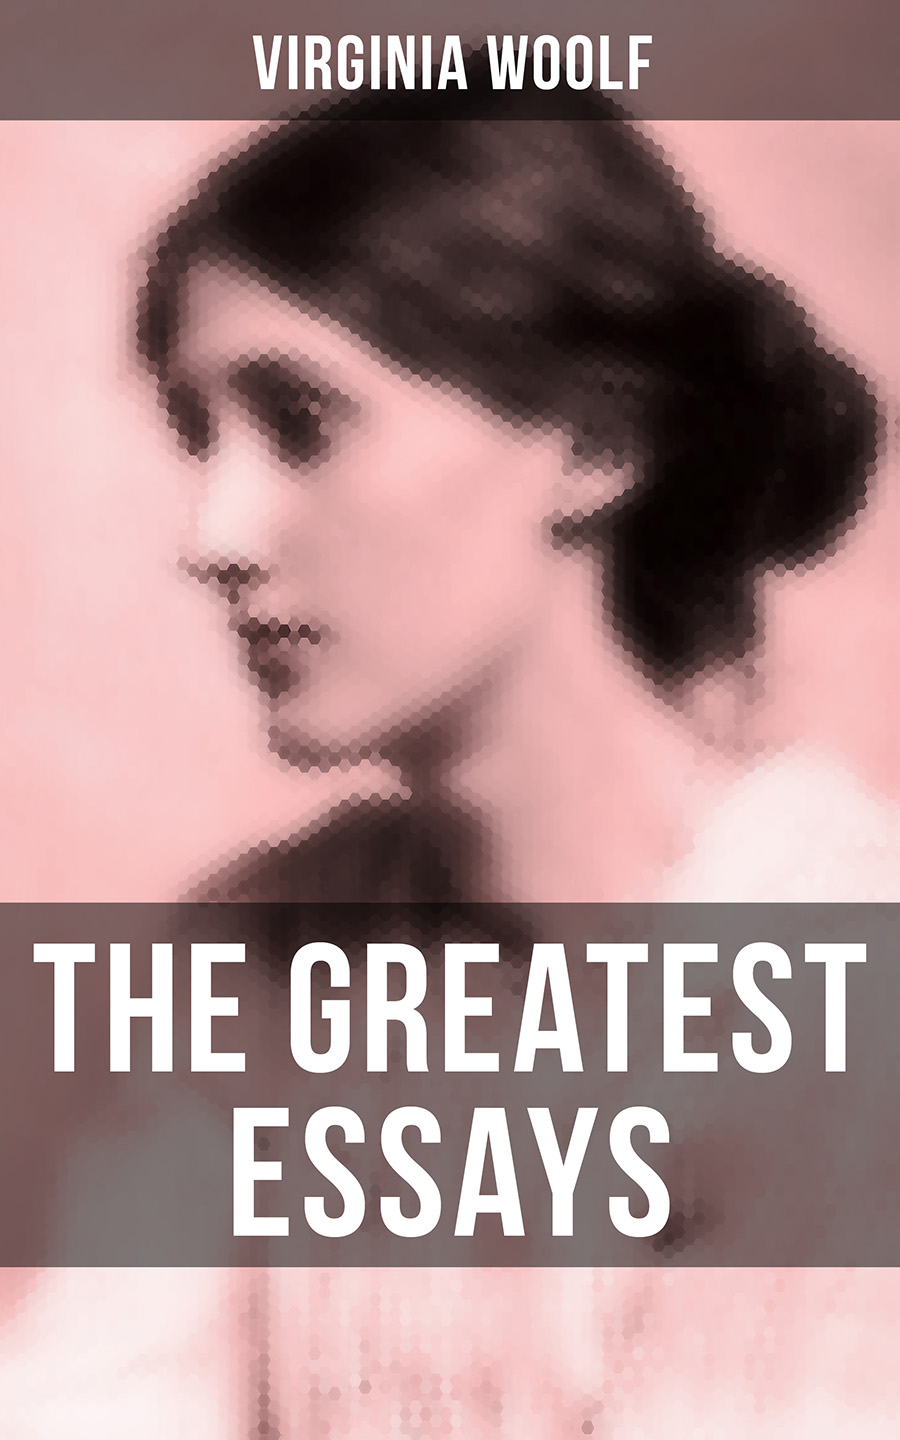 Virginia Woolf The Greatest Essays of Virginia Woolf virginia woolf the complete novels of virginia woolf 9 unabridged novels